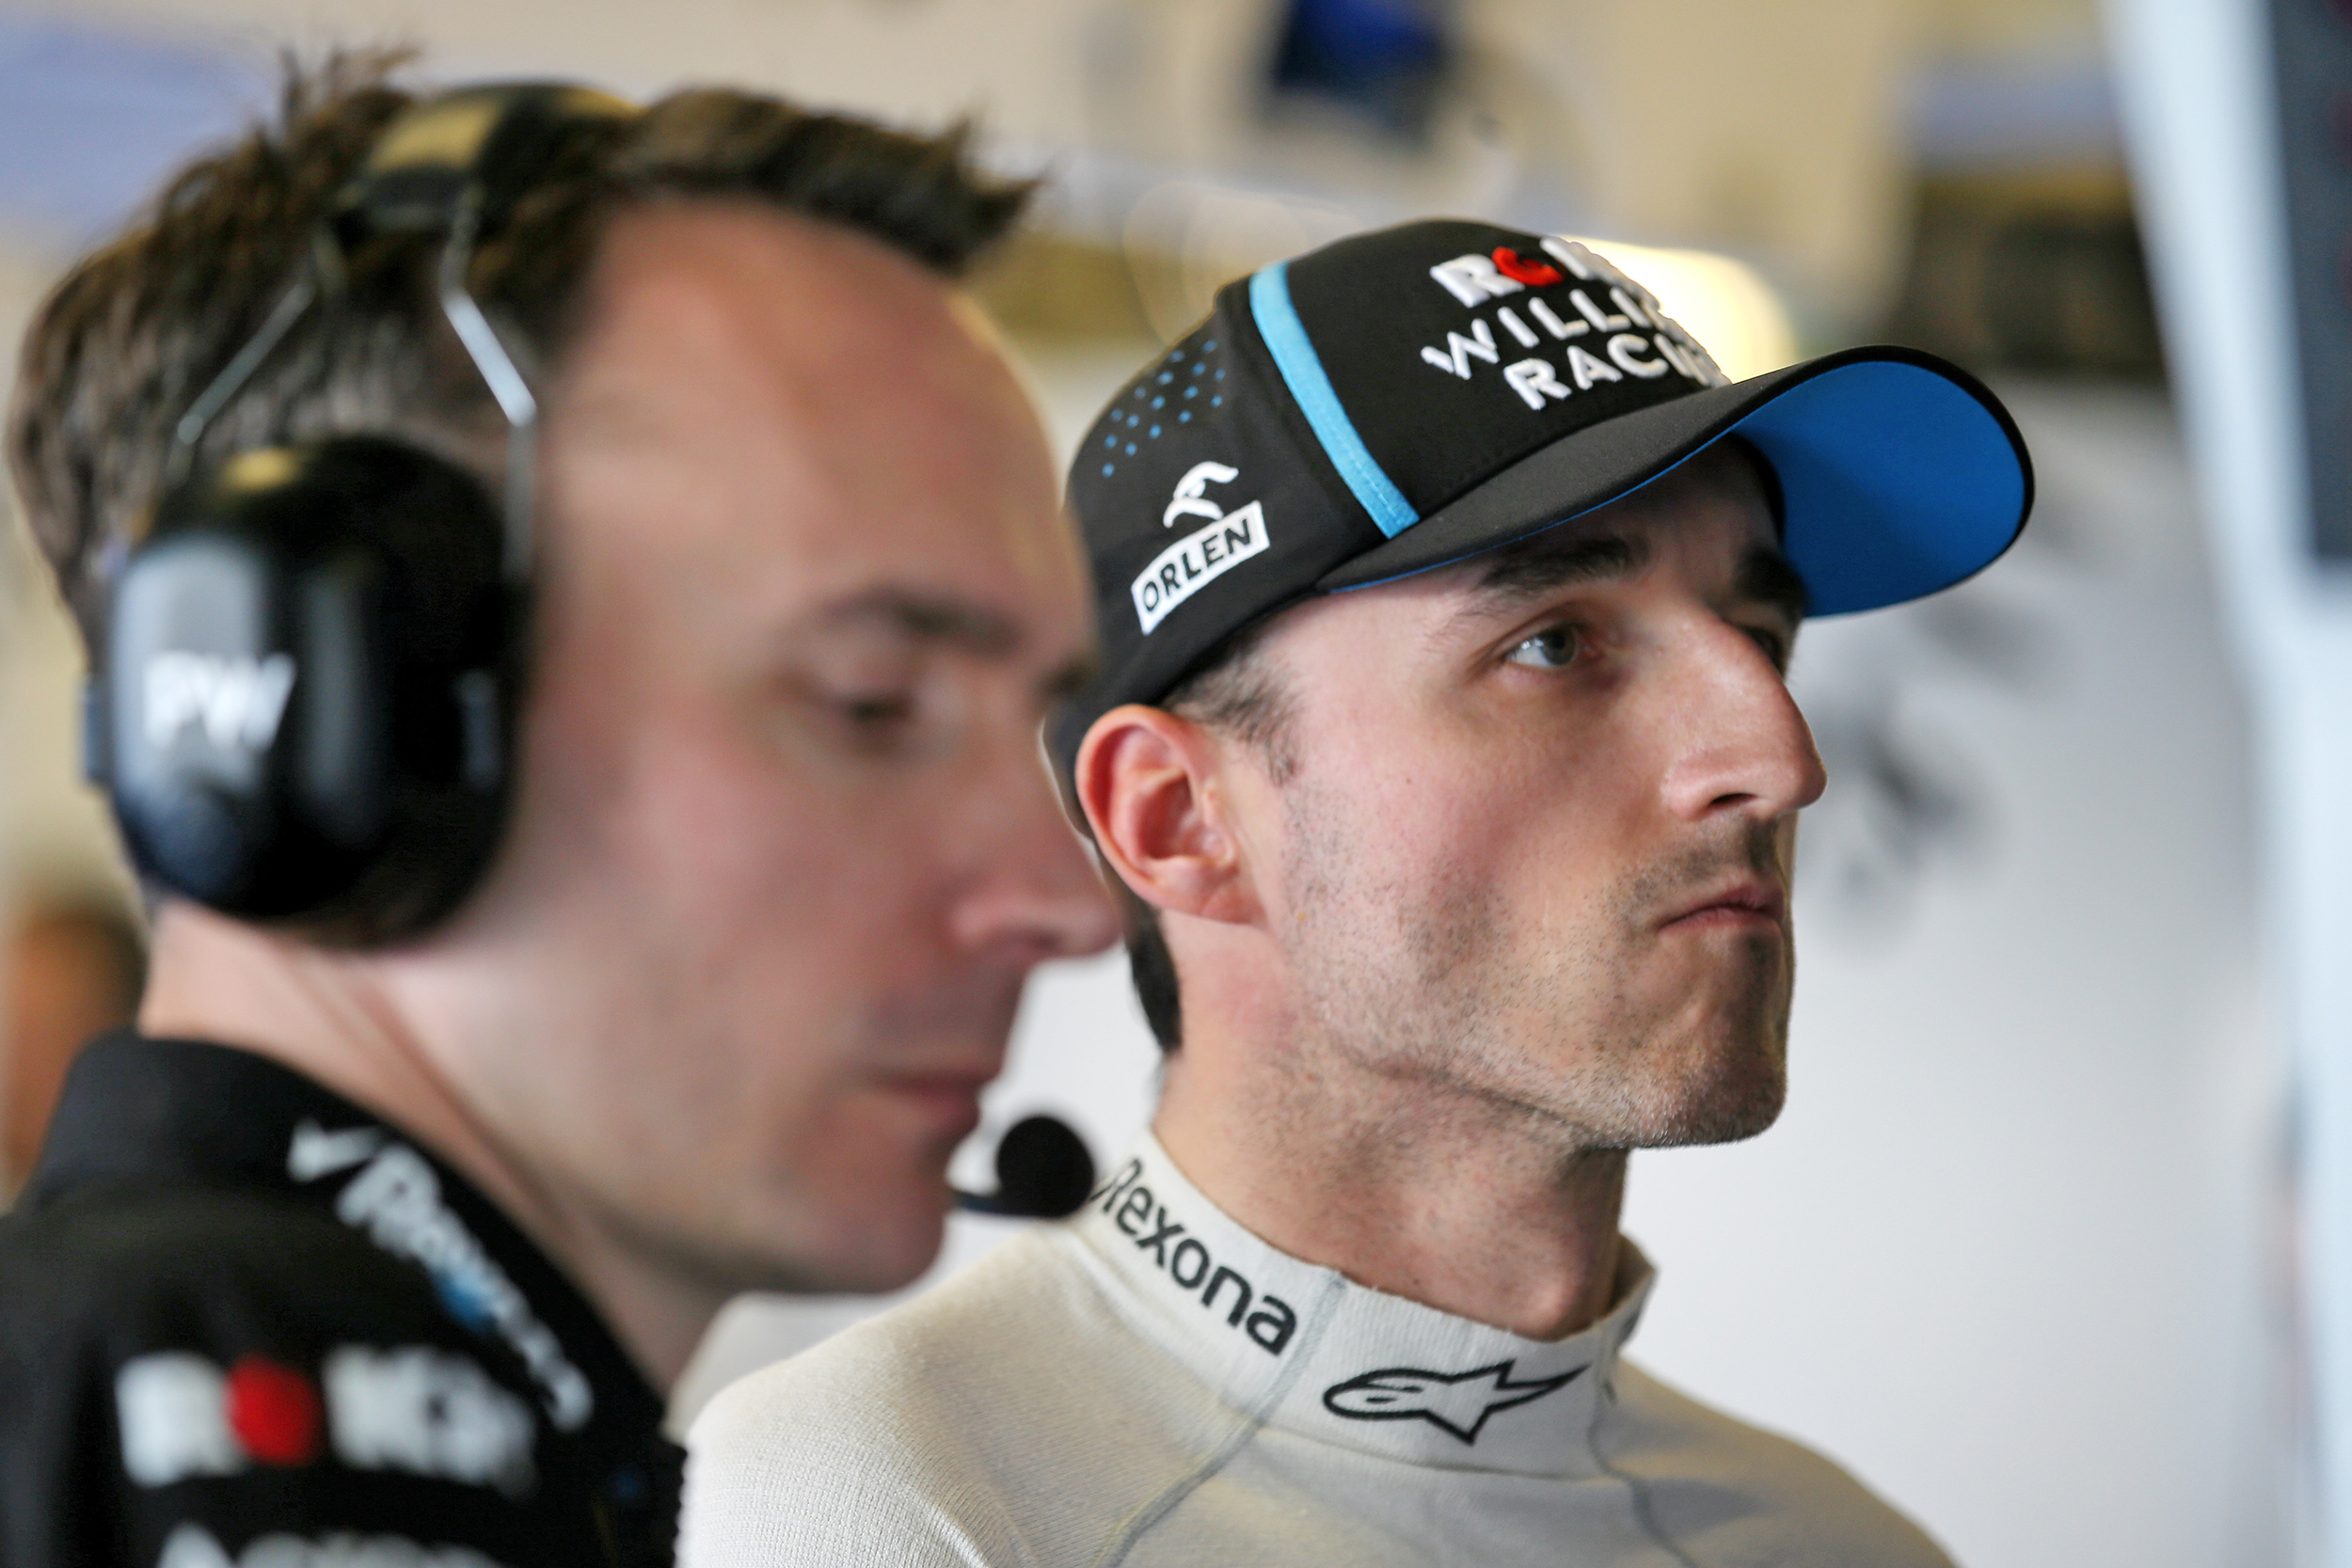 Kubica plans to take part in the Jerez DTM test with BMW